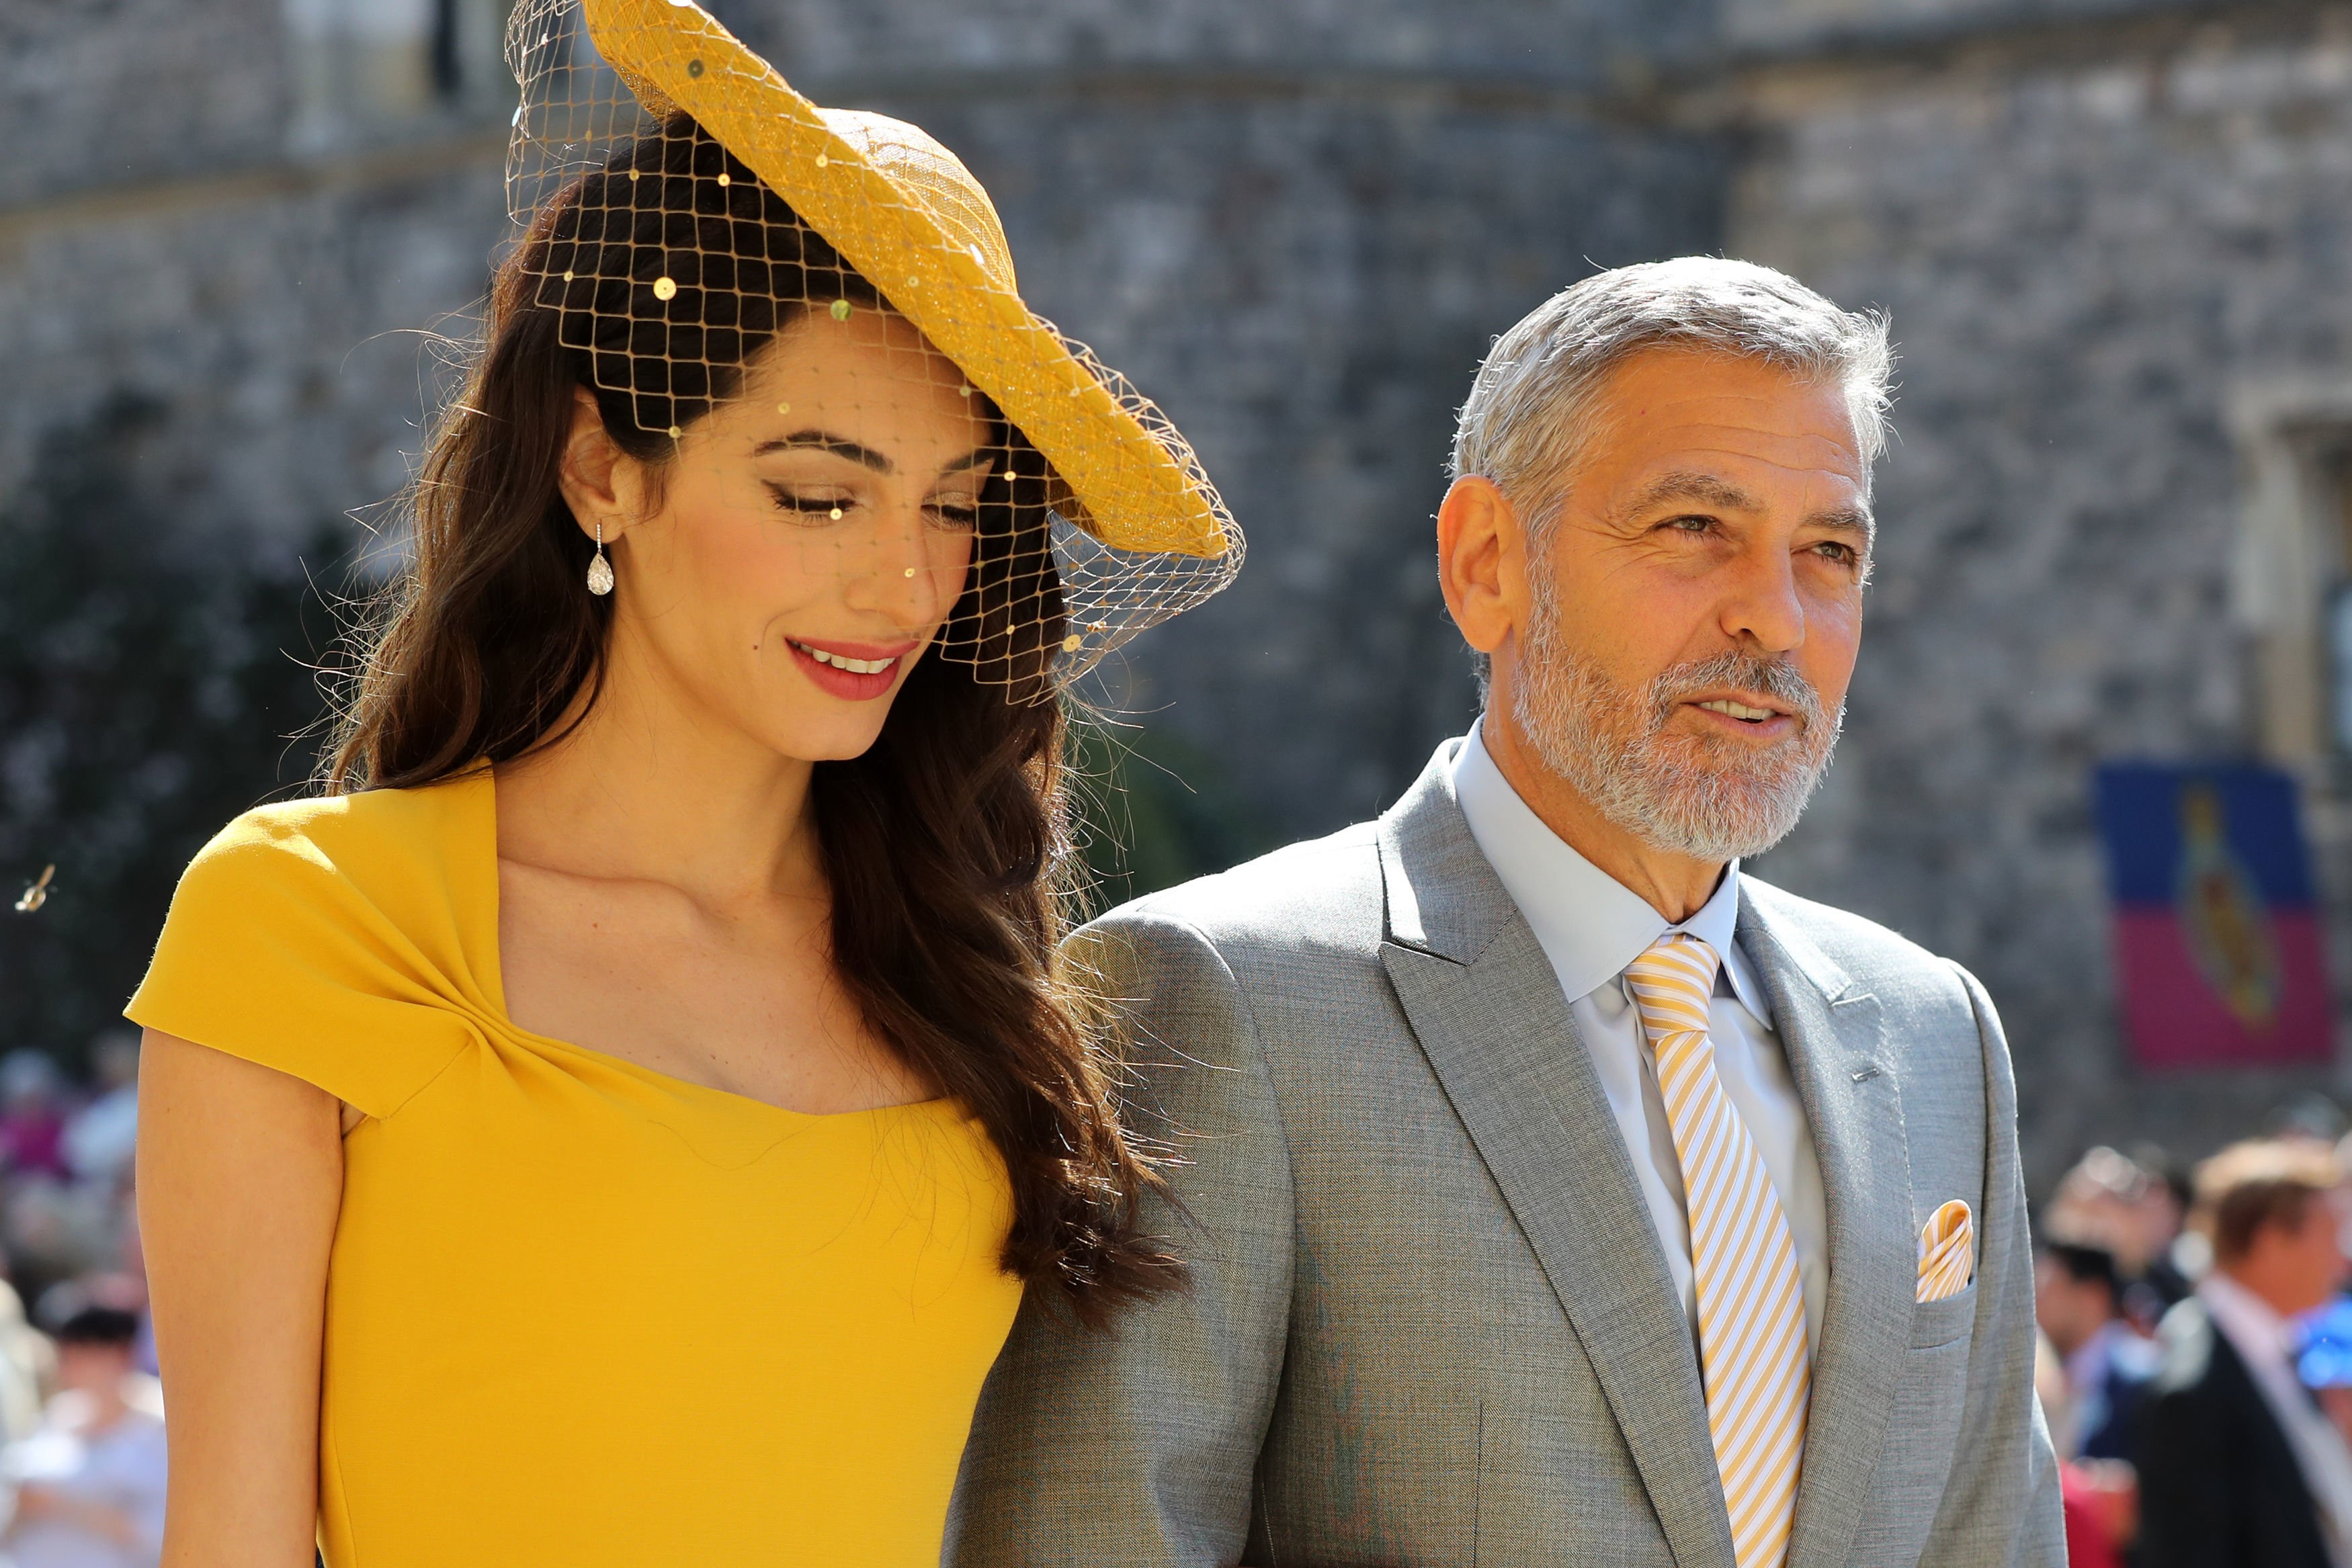 George and Amal Clooney attend the royal wedding of Prince Harry and Meghan Markle in April 2018 | Photo: Getty Images